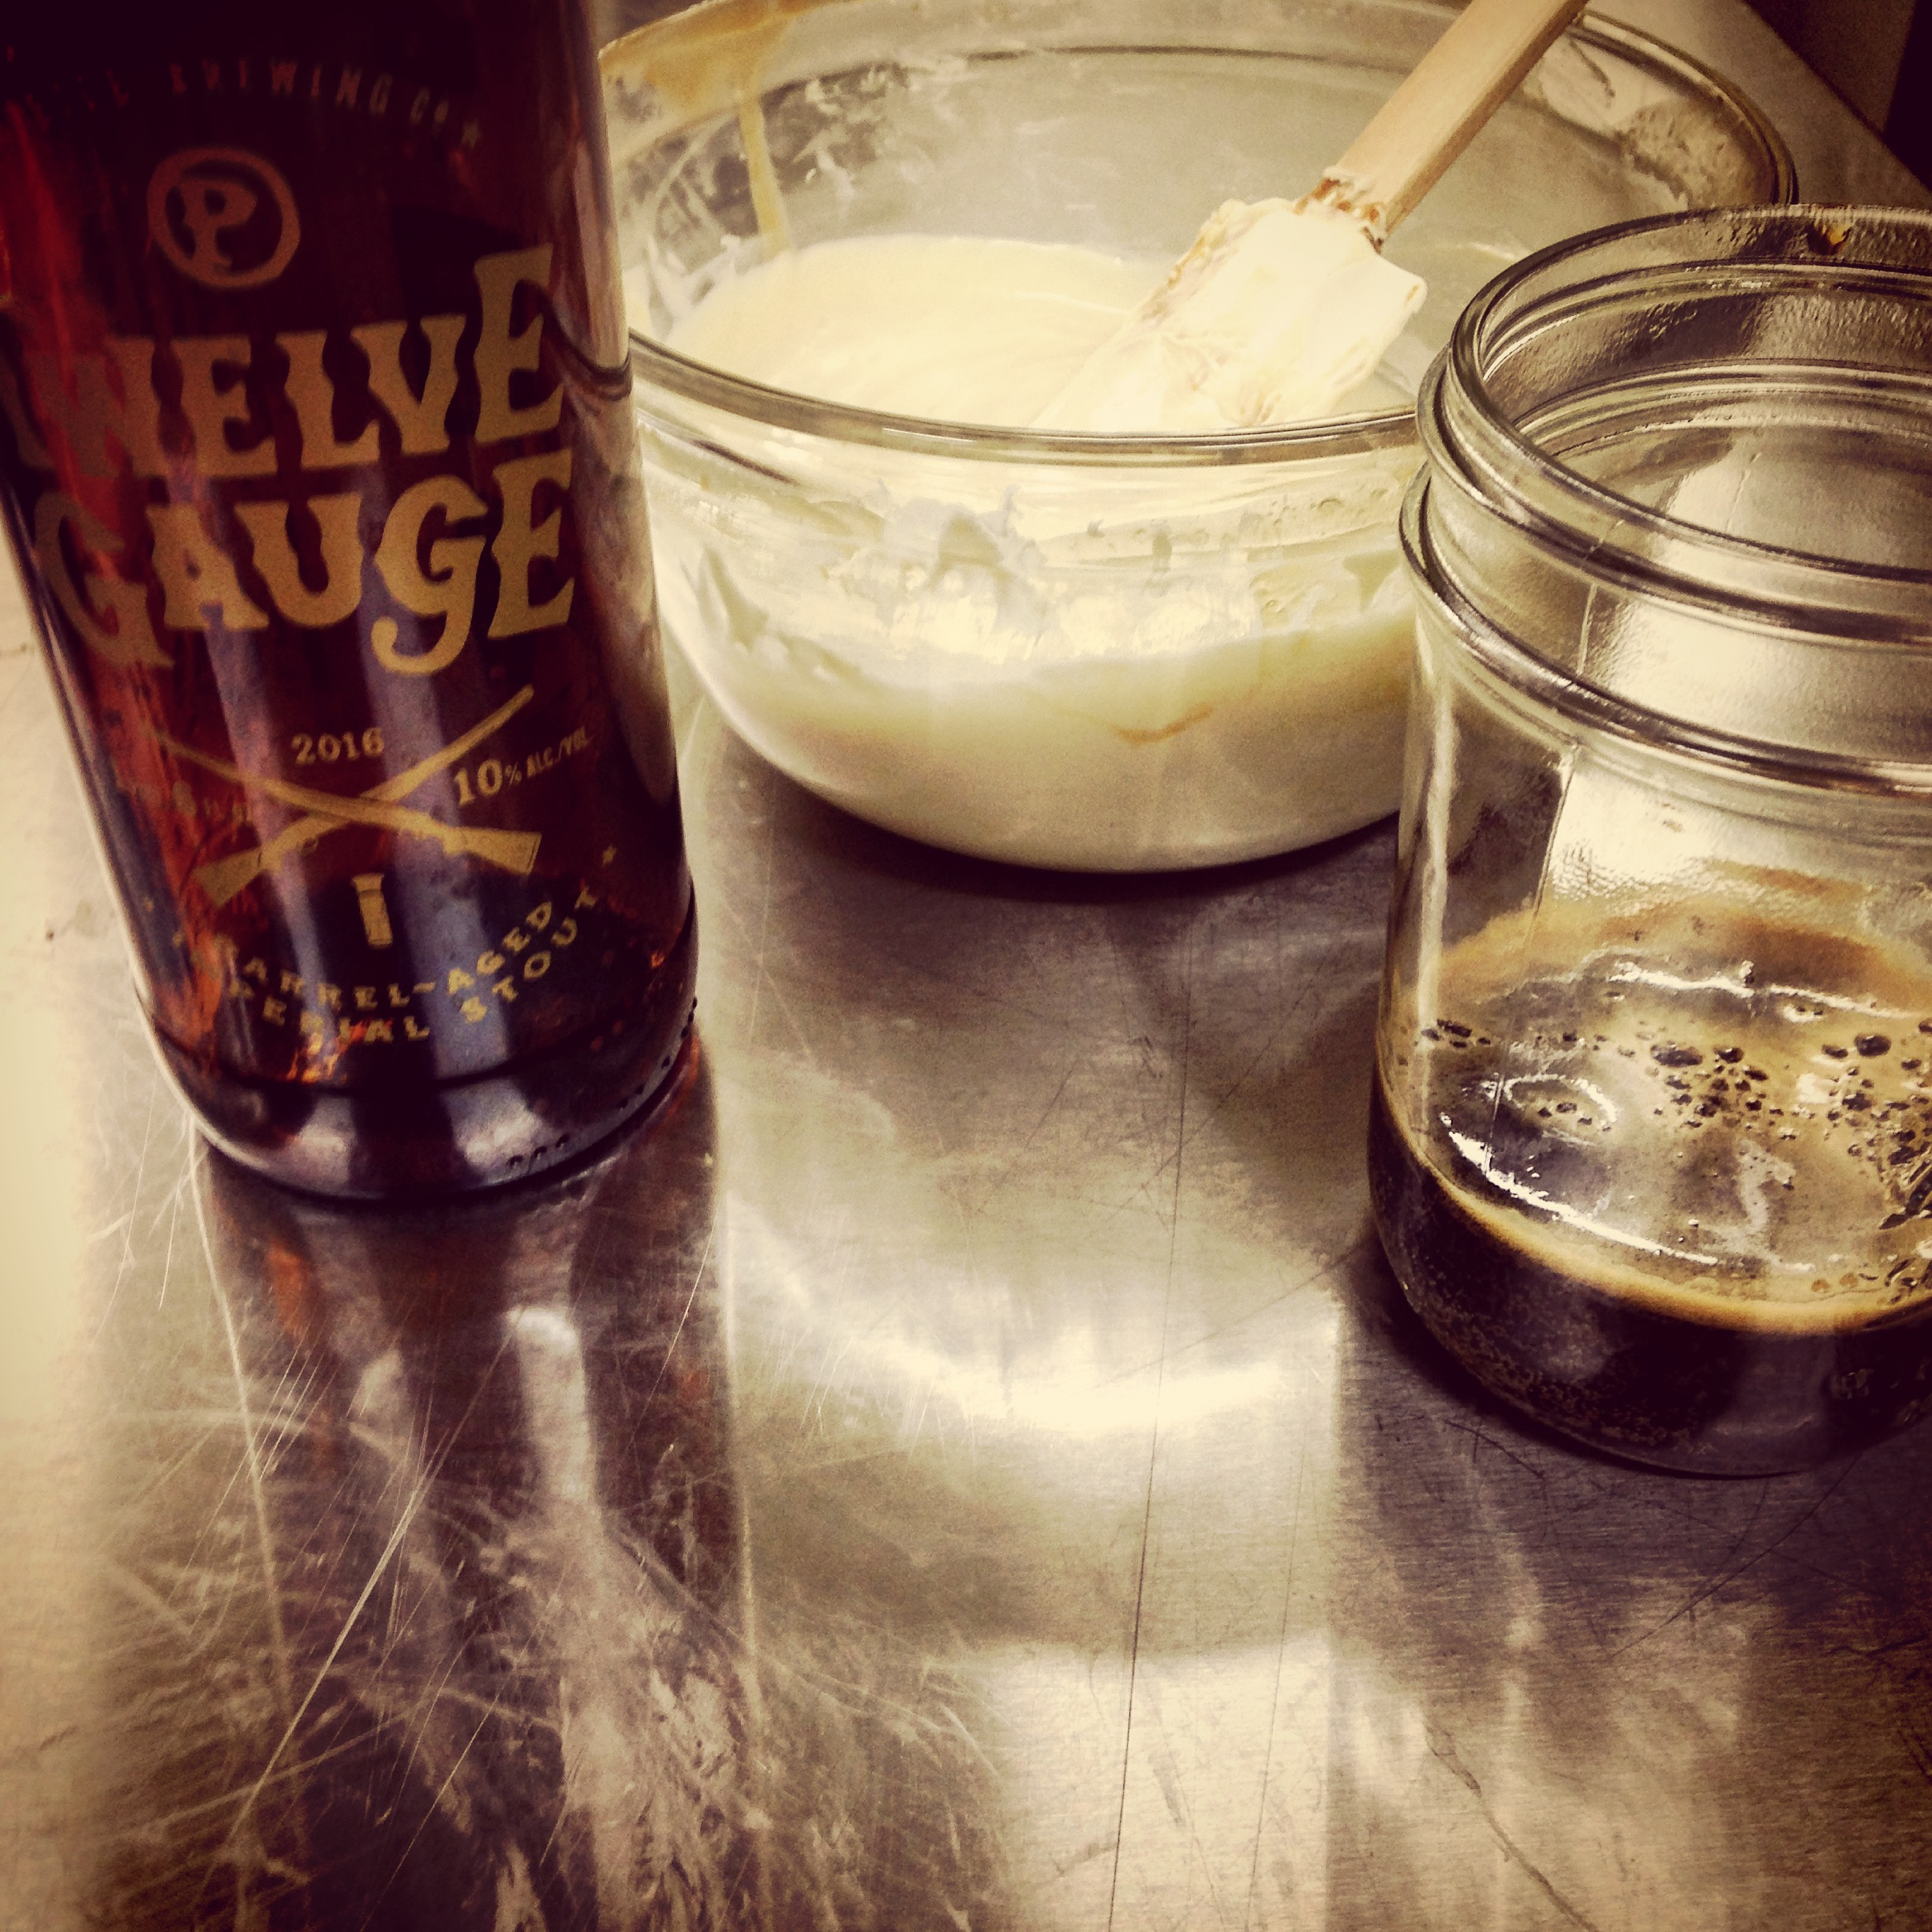 The making of Payette Brewing Twelve Gauge Imperial Stout Truffle